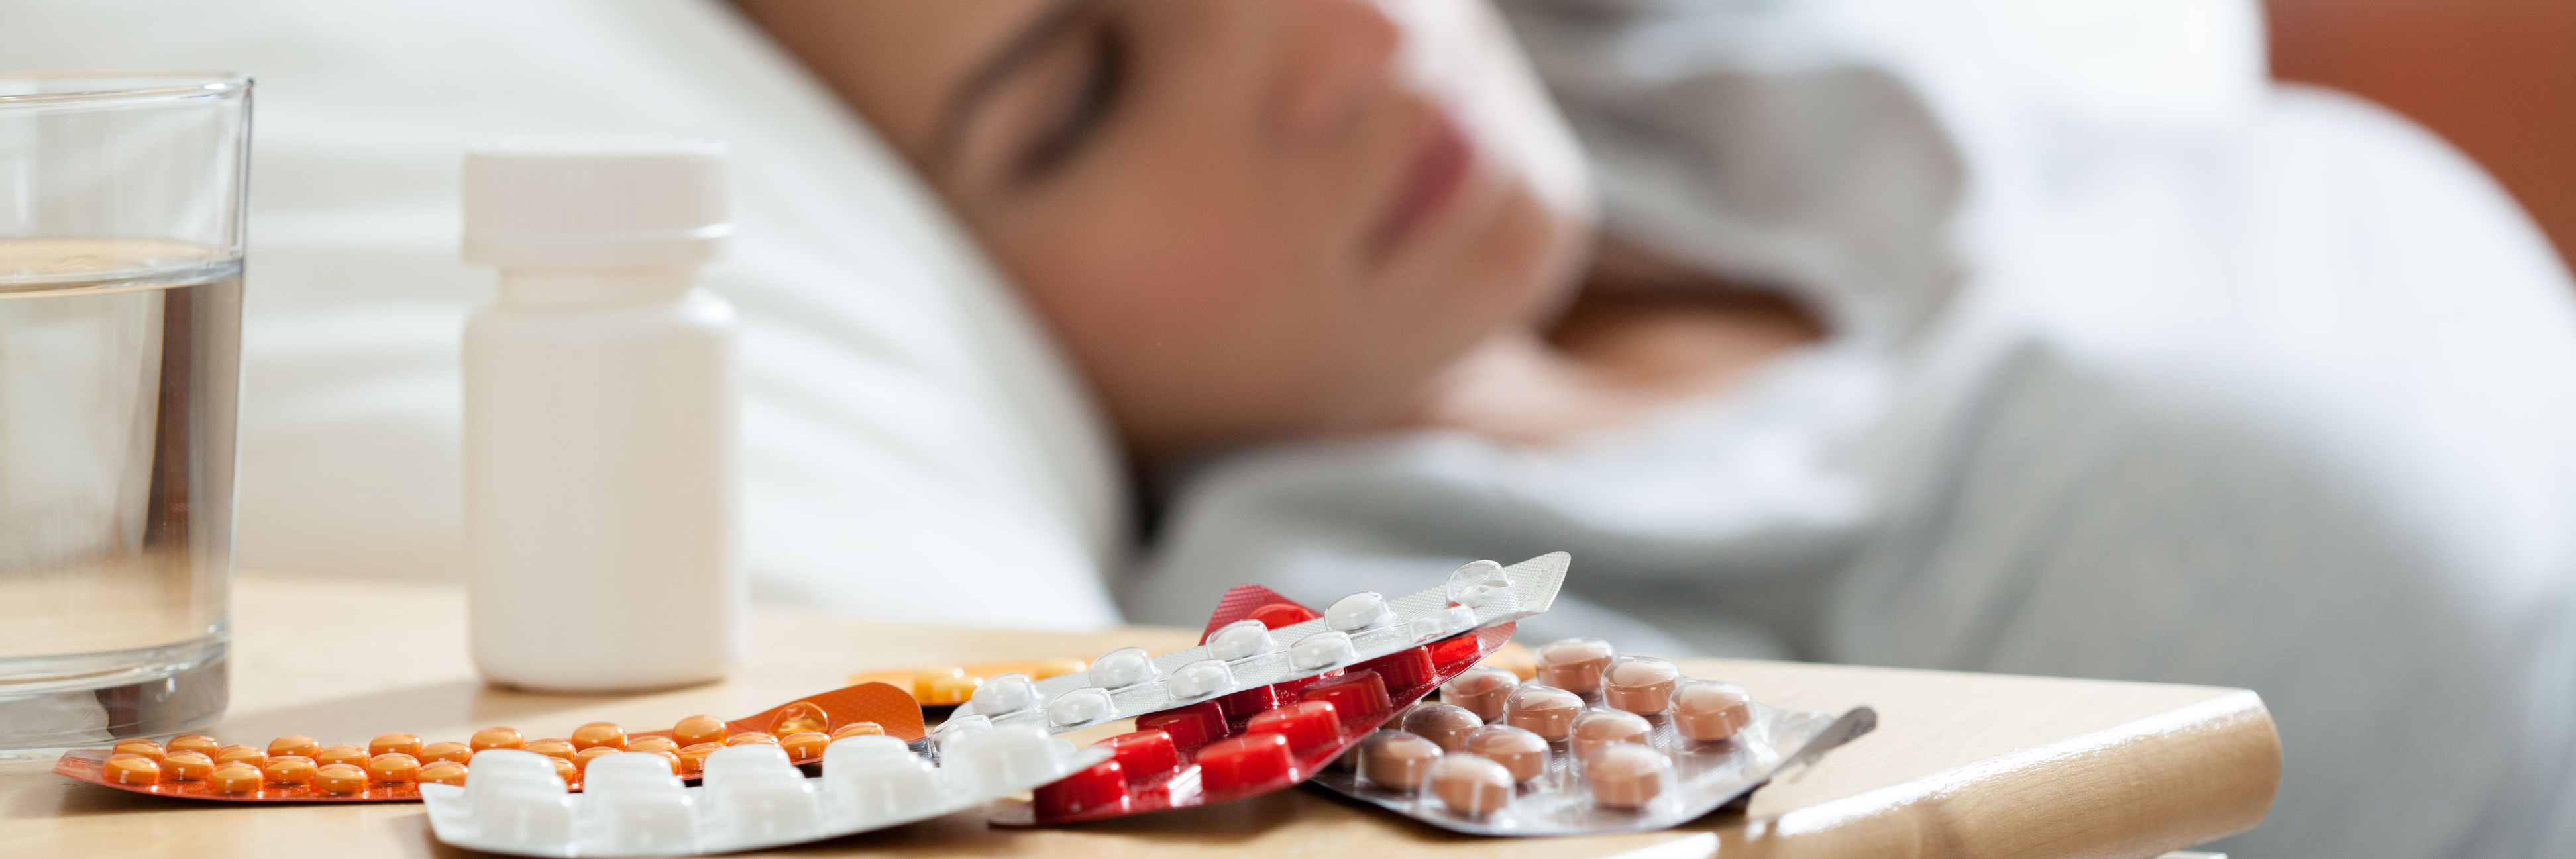 medication on night table in bedroom beside unwell looking woman